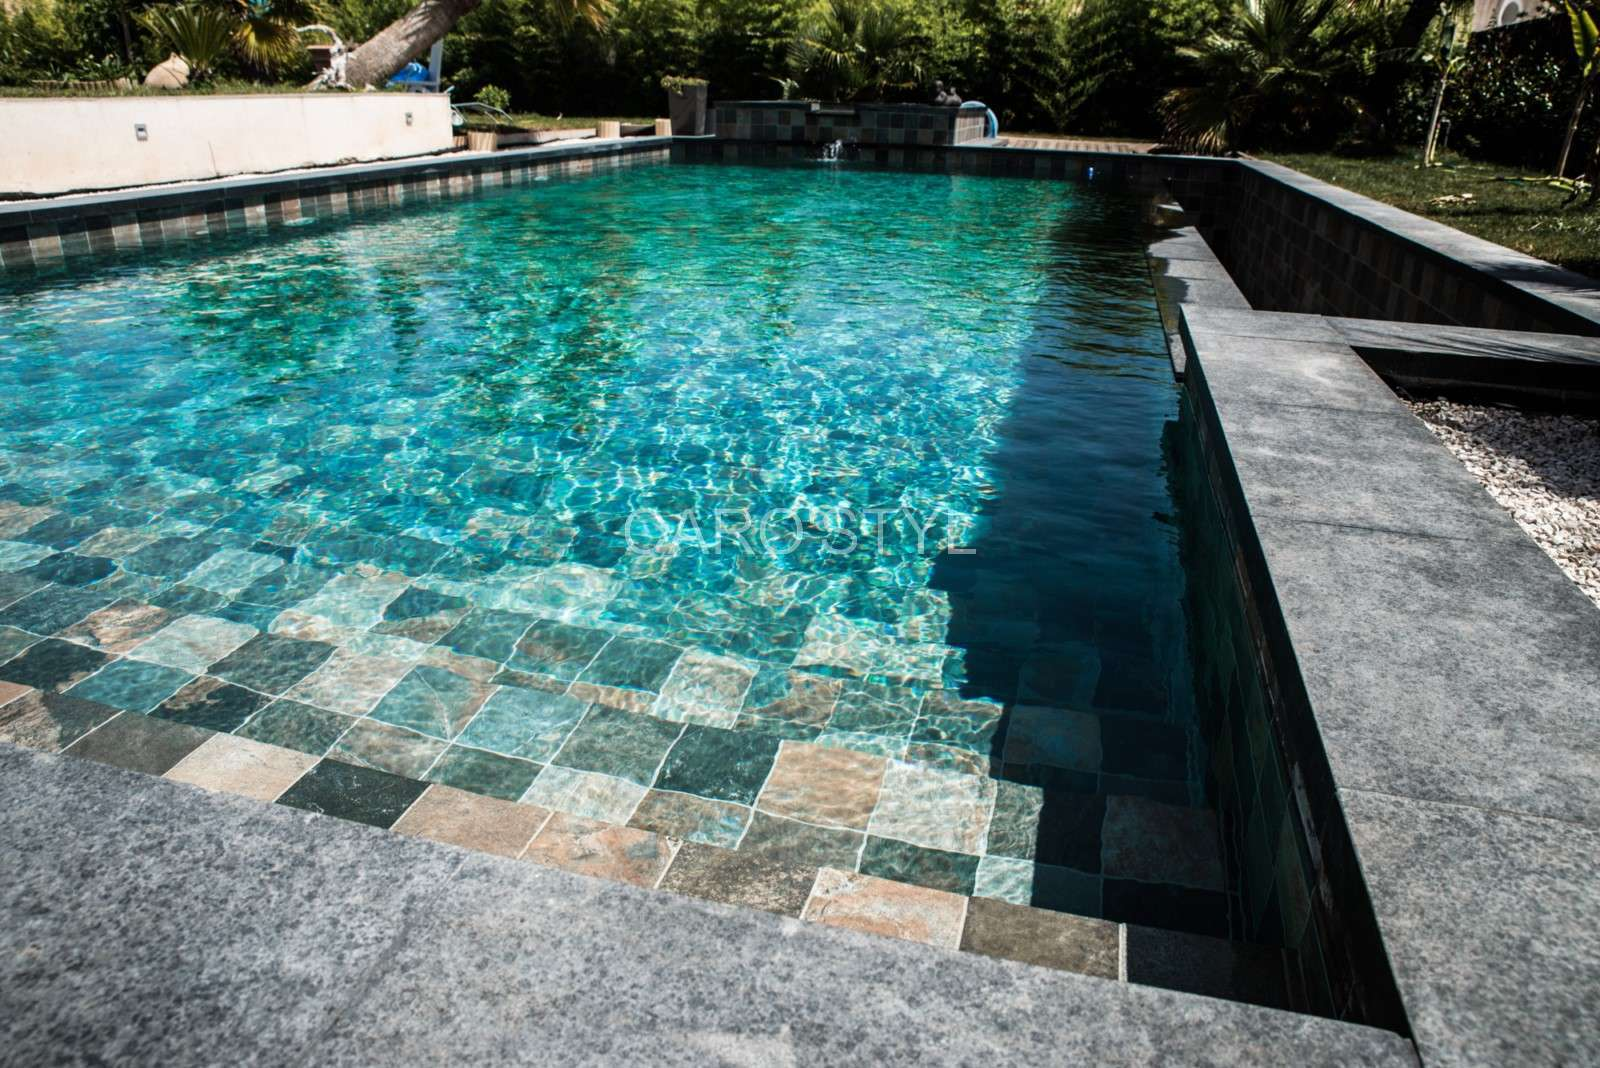 Carrelage piscine bali super d co for Prix piscine carrelee